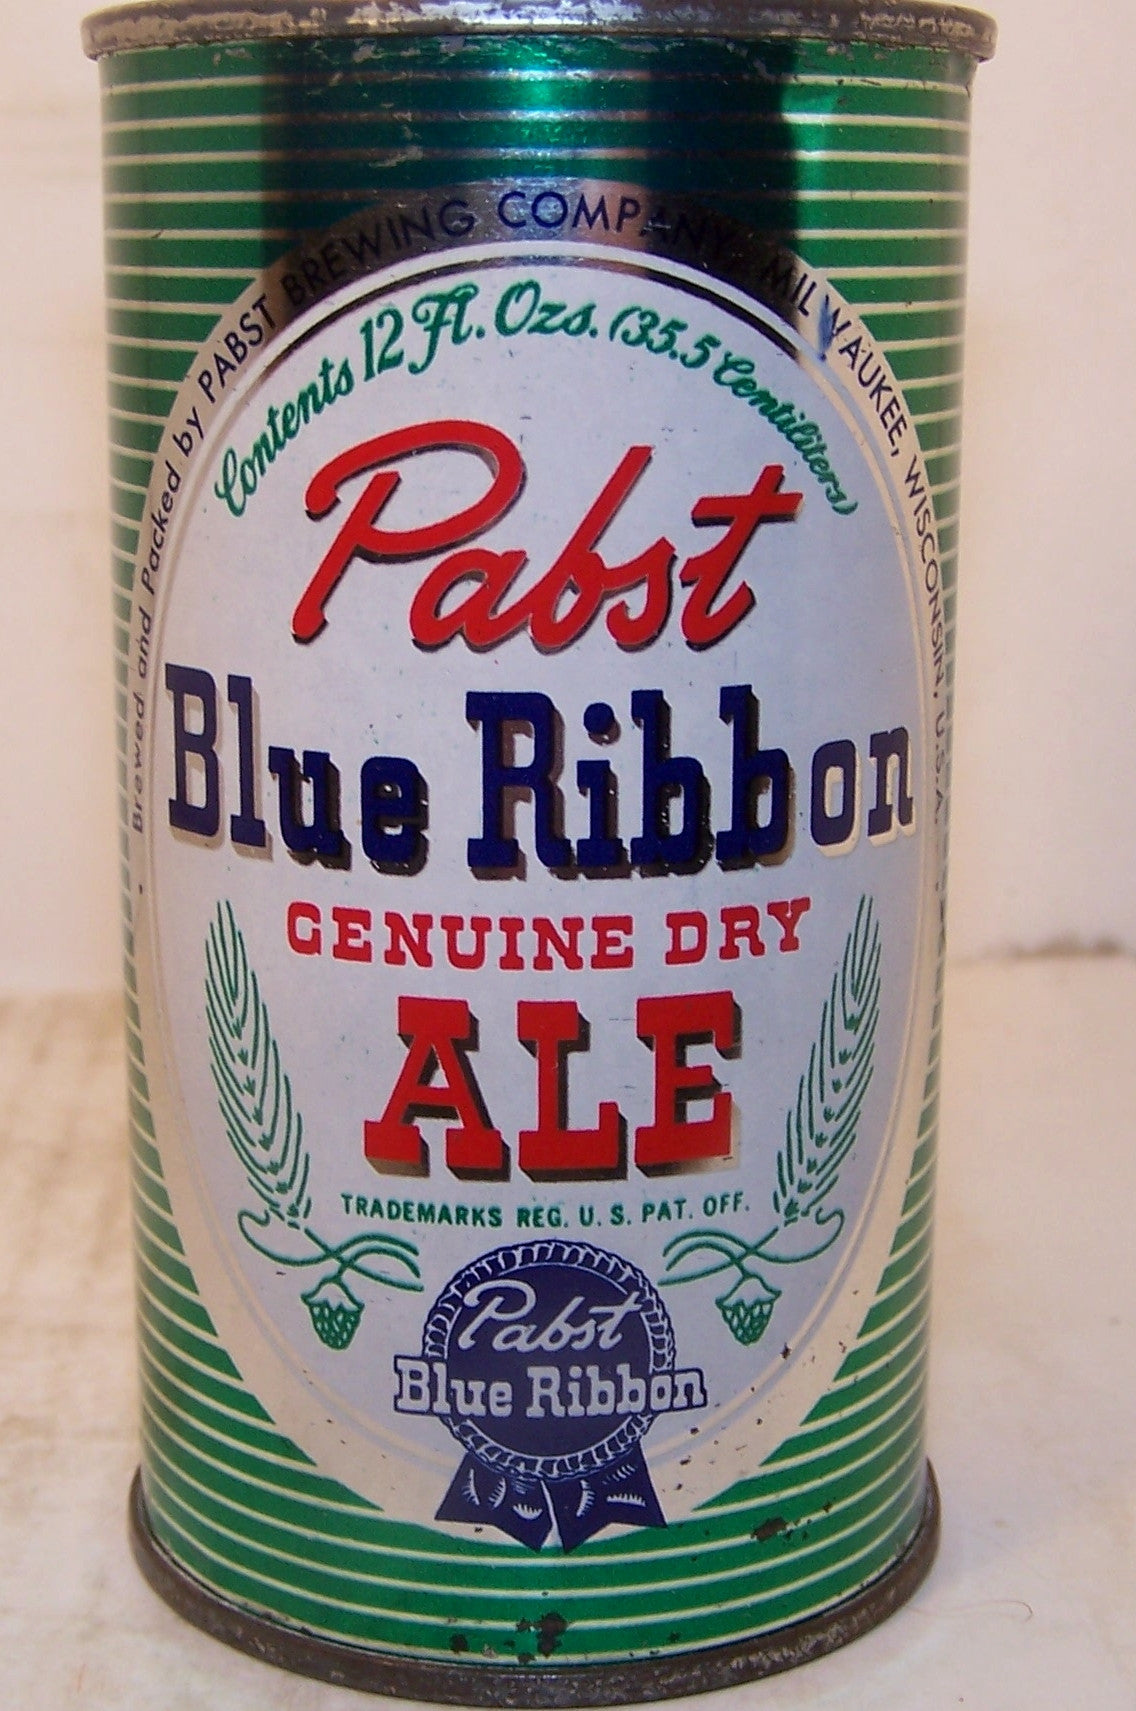 Pabst Blue Ribbon Genuine Dry Ale, USBC 111-2 Grade 1 Sold 12/2/14